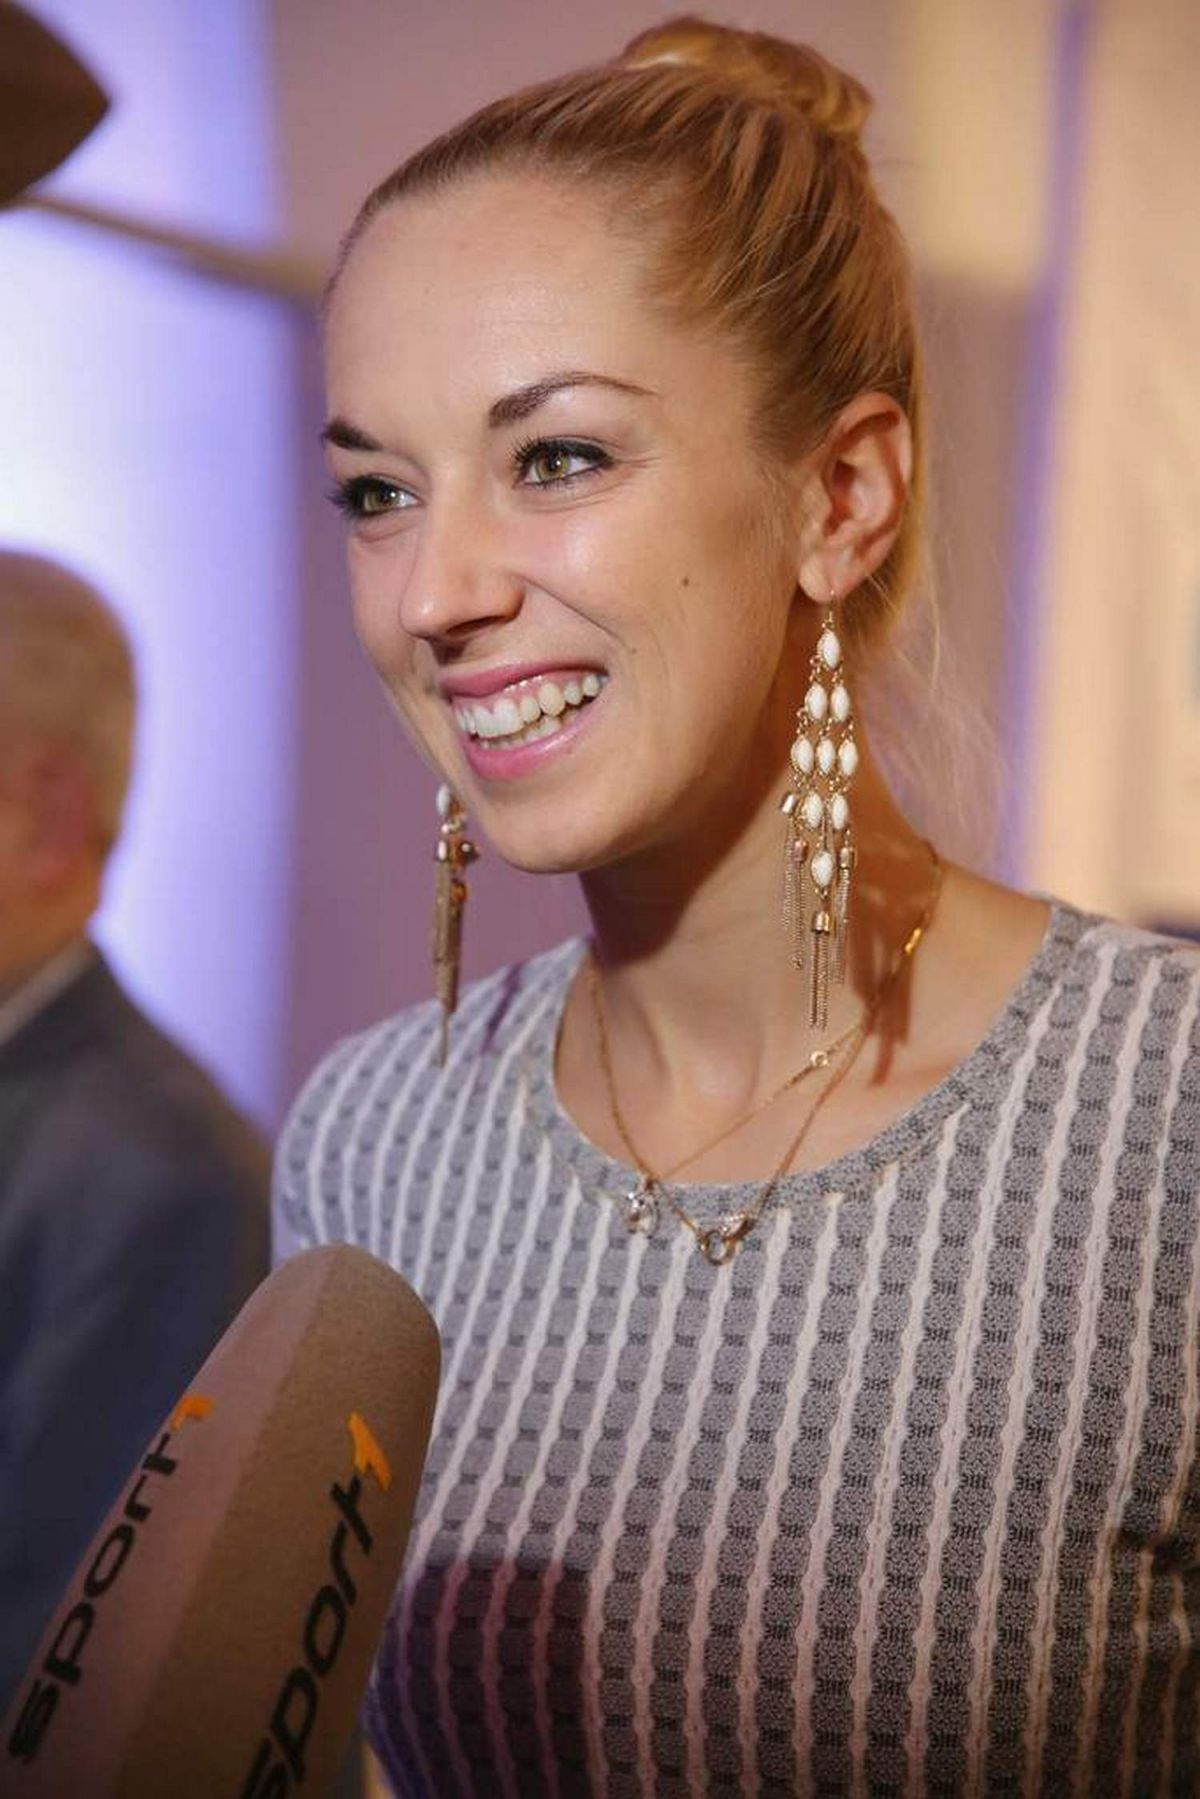 SABINE LISICKI at 70 Years Sid Celebration in Cologne 10 ...